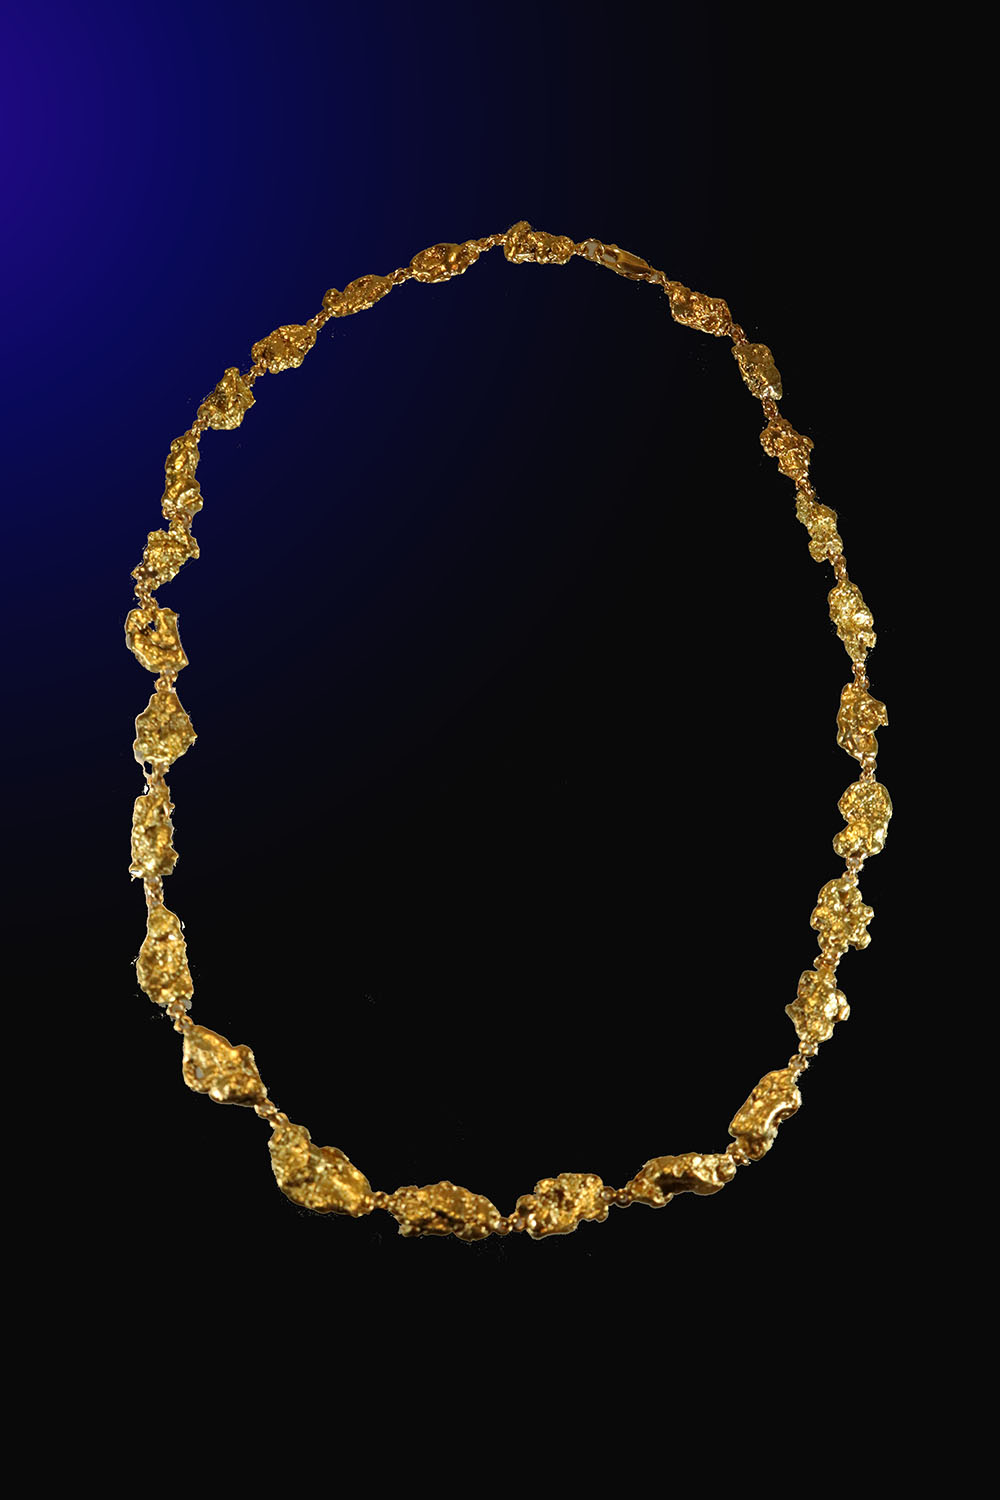 18 inch Custom Made Gold Nugget Necklace - Alaska gold Nuggets